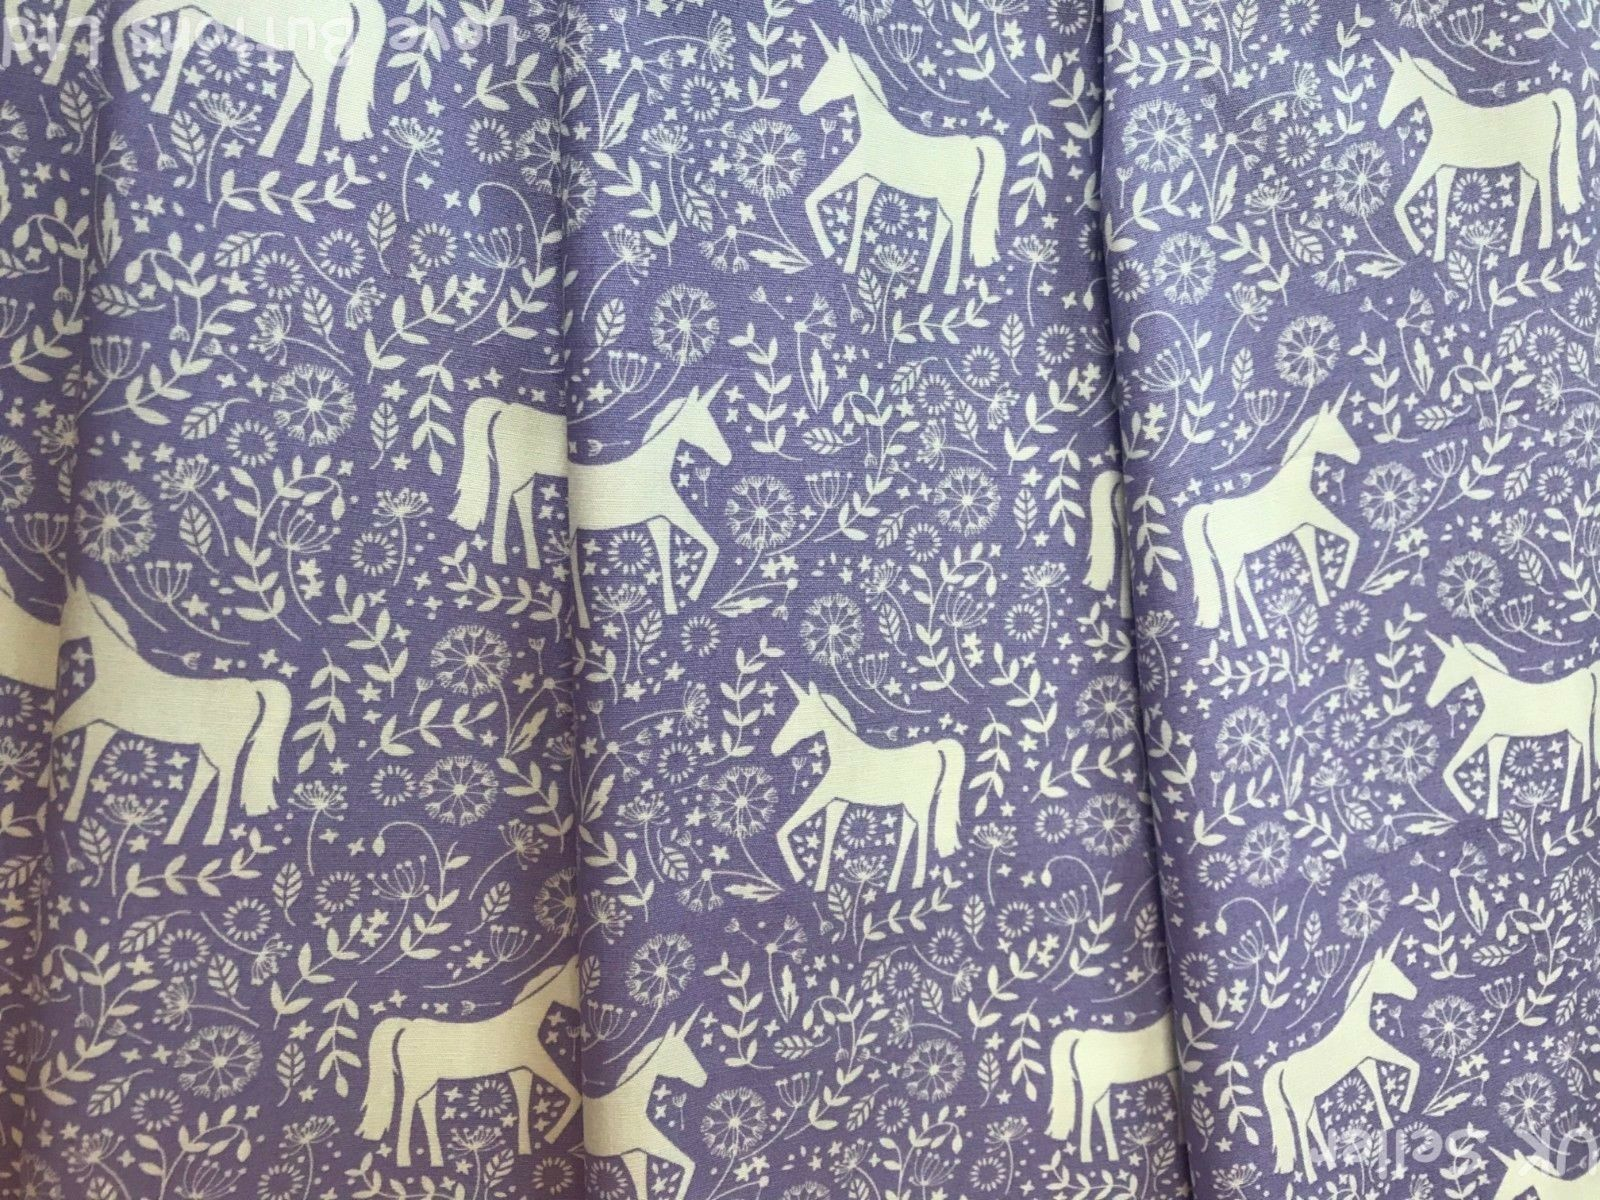 JOHN LOUDEN LILAC UNICORN AND FLOWERS FABRIC 100/% COTTON 112CM WIDE PER METRE